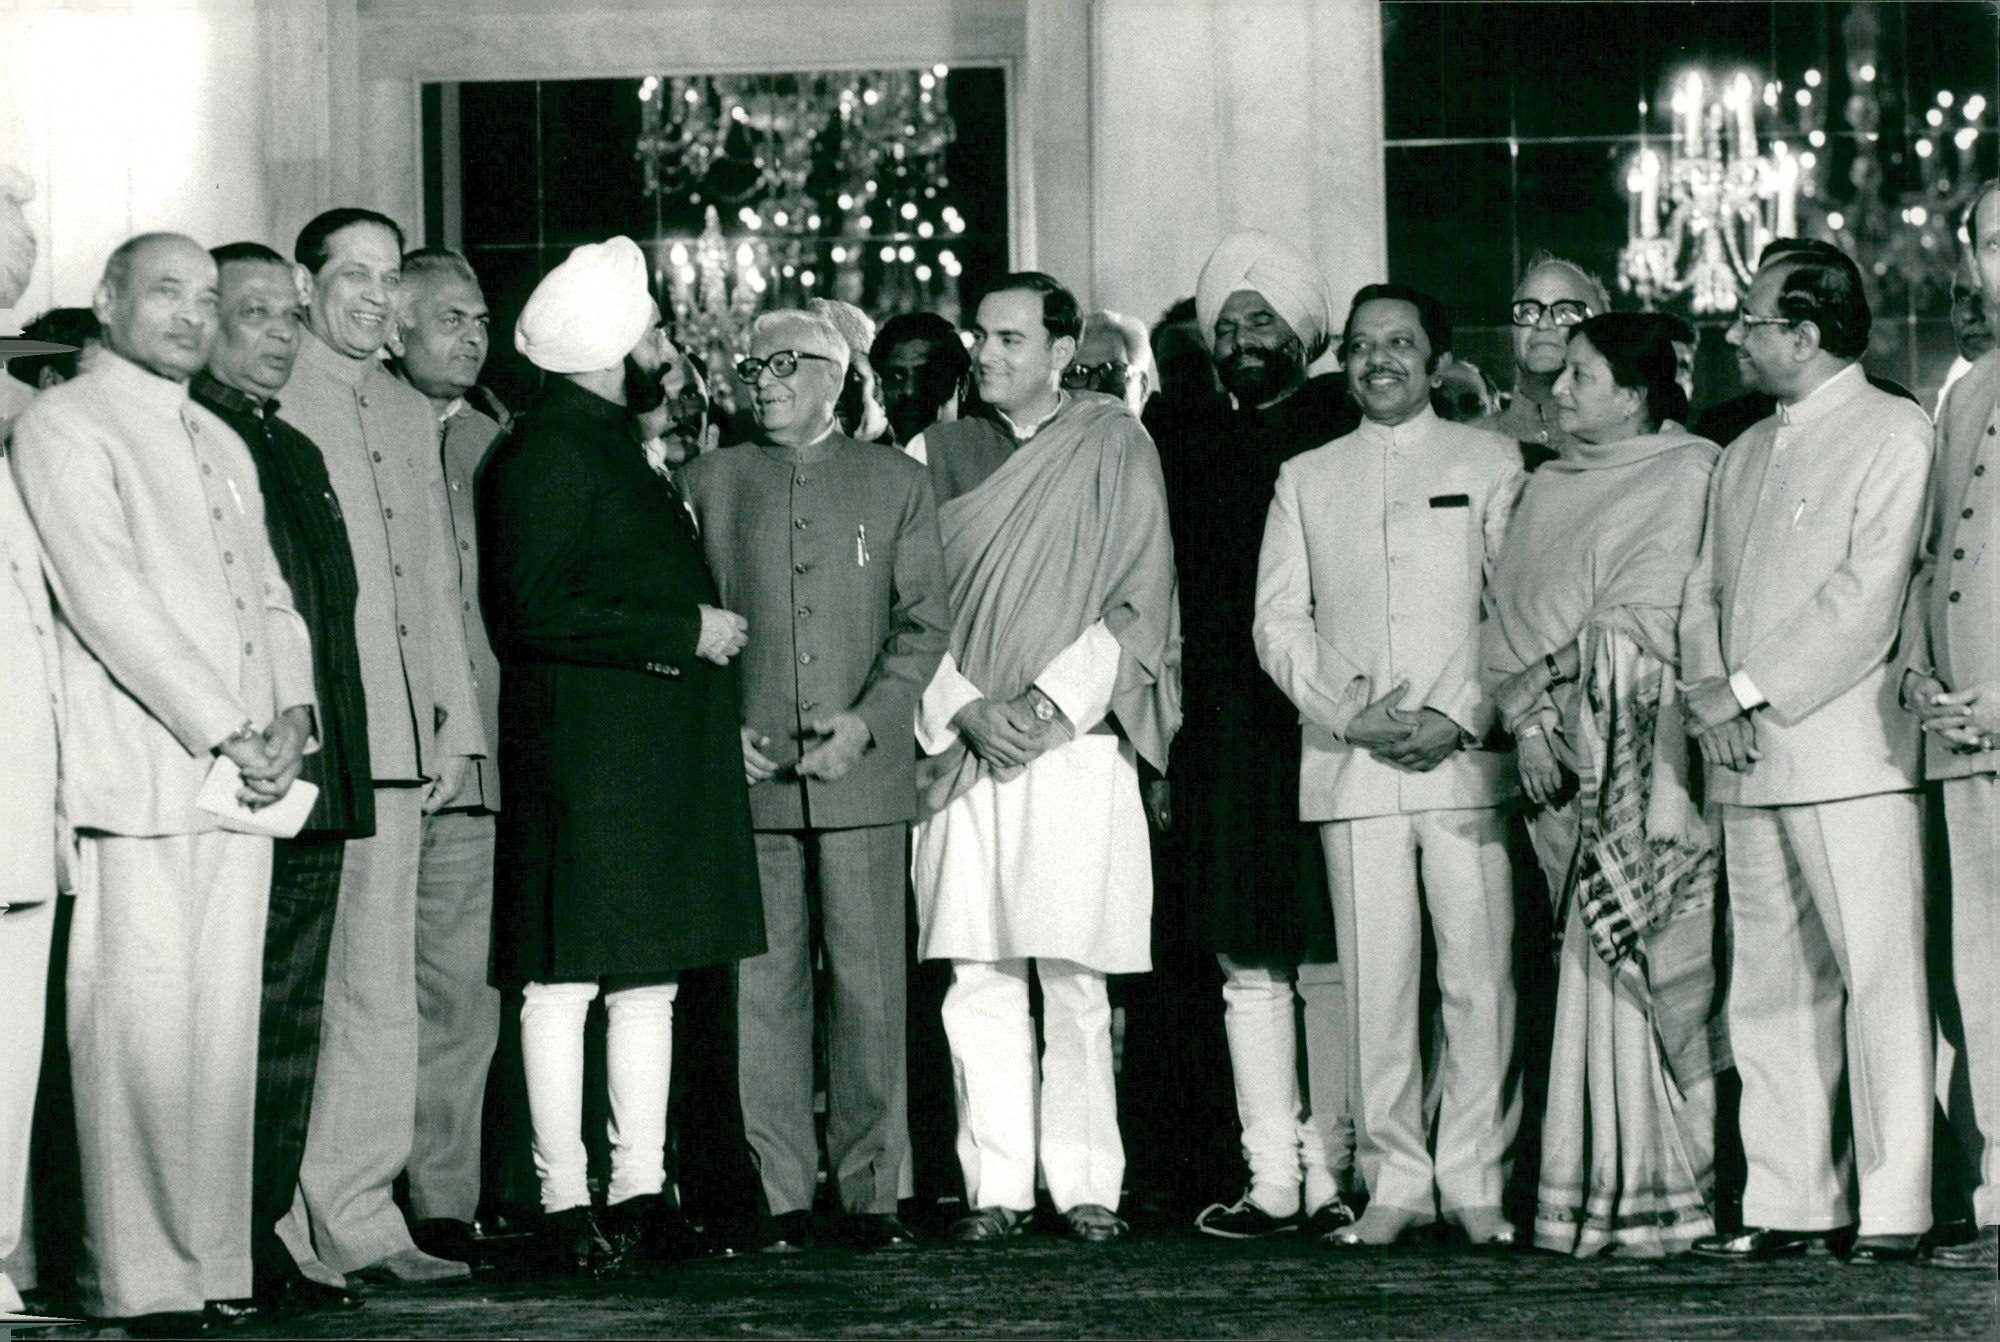 Indias Prime Minister Rajiv Gandhi flanked by, among others, Buta Singh and Giani Zail Singh SCAN-TT-00710599 - IMS Vintage Photos